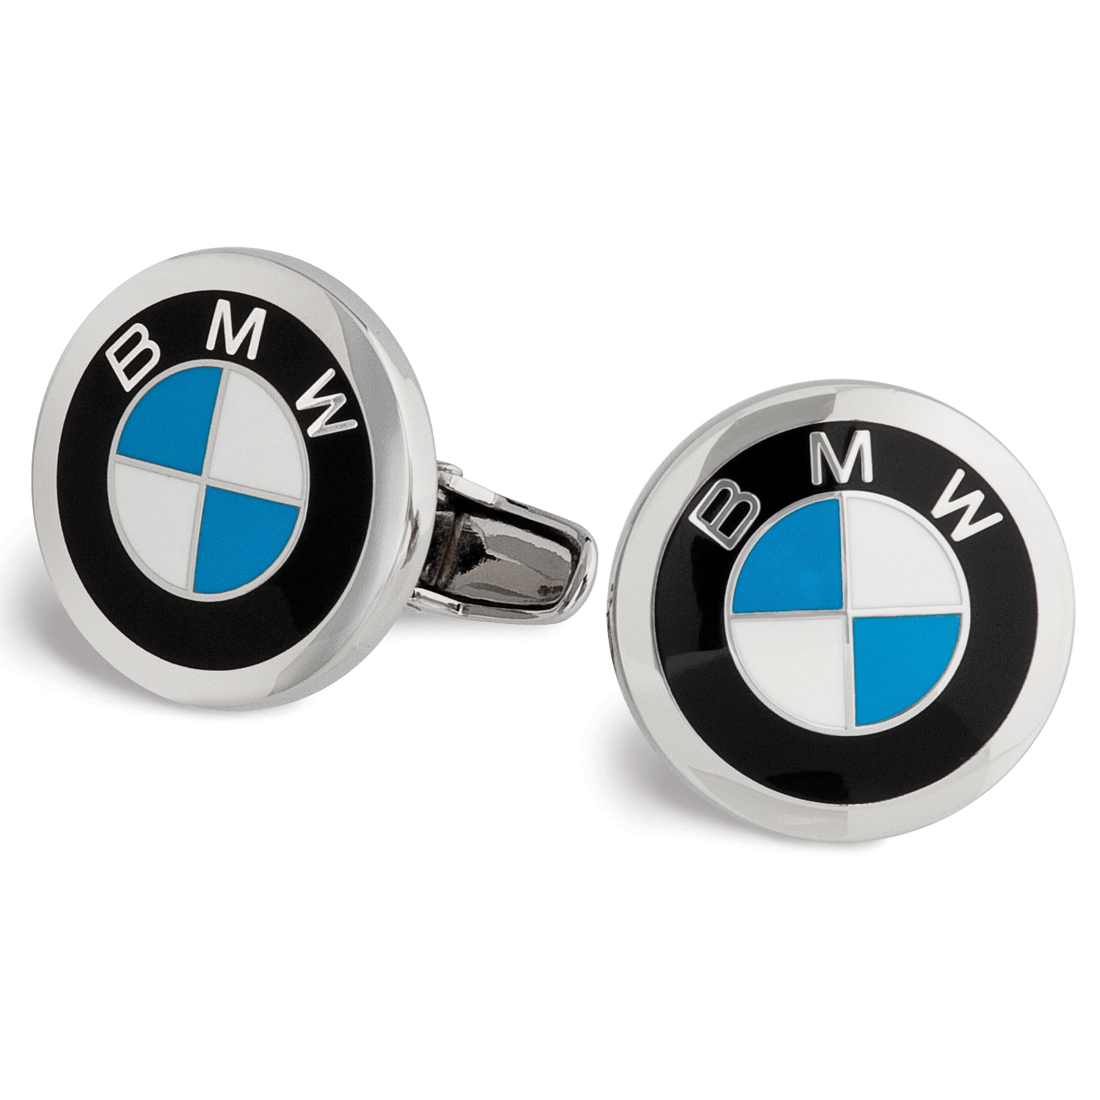 BMW Roundel Cuff Links